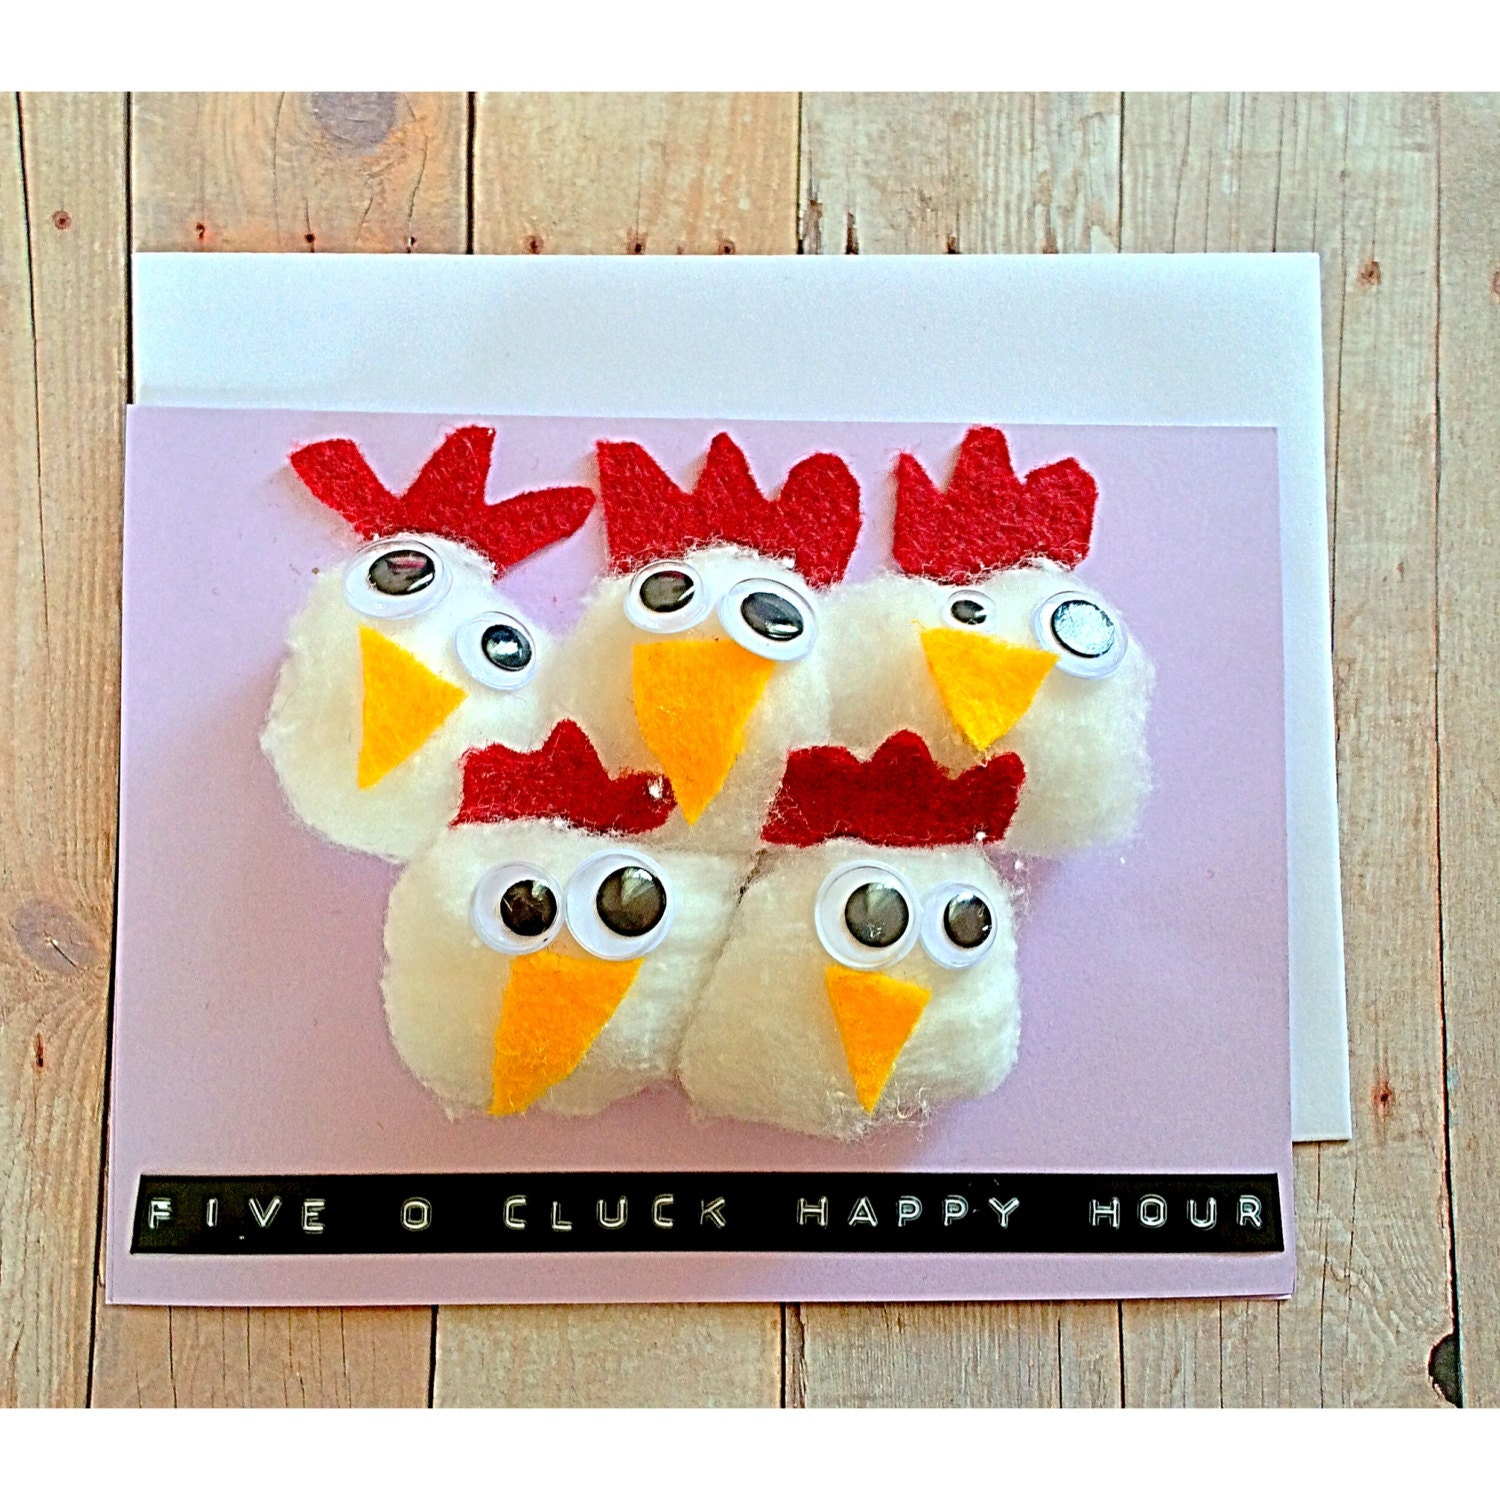 5 O Cluck Happy Hour Pack Of Hens Pun Humor Handmade Etsy The Diagram A Chicken Zoom